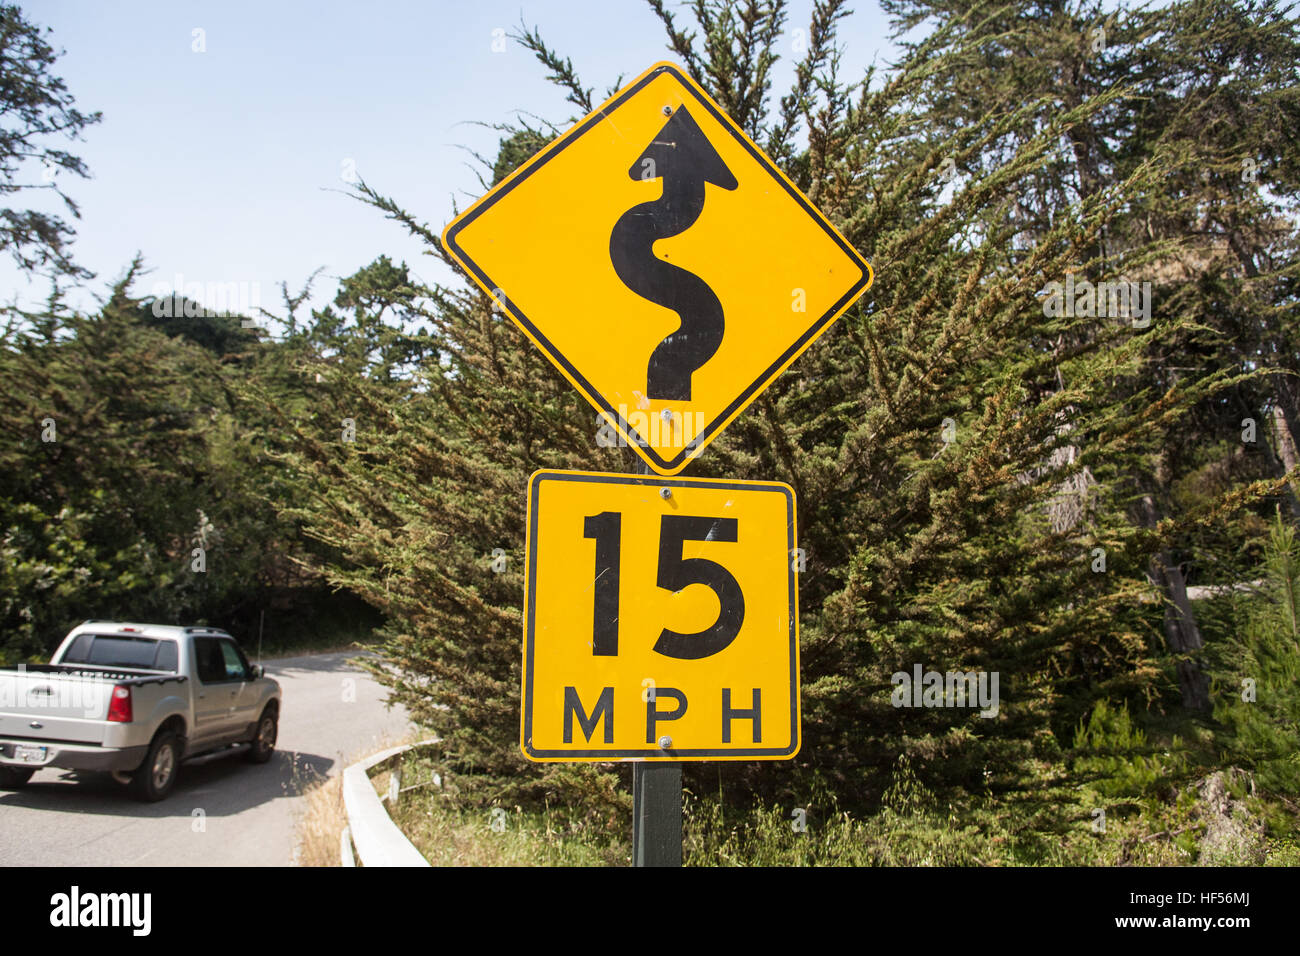 car,cars,on,Winding,bend,bendy,low,speed,limit,sign,on,road